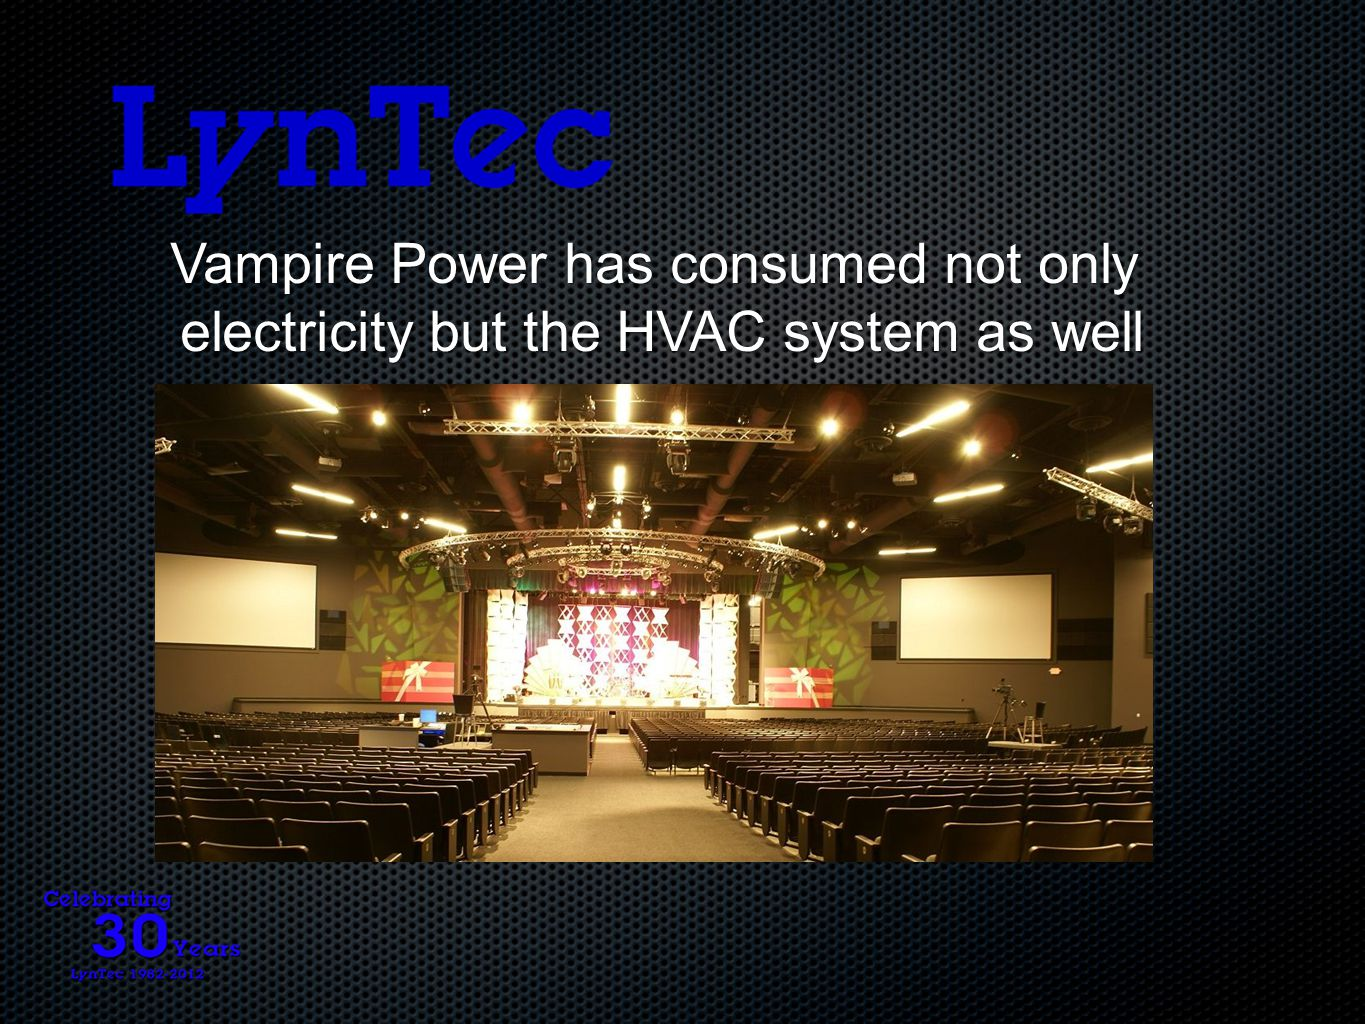 Vampire Power has consumed not only electricity but the HVAC system as well electricity but the HVAC system as well